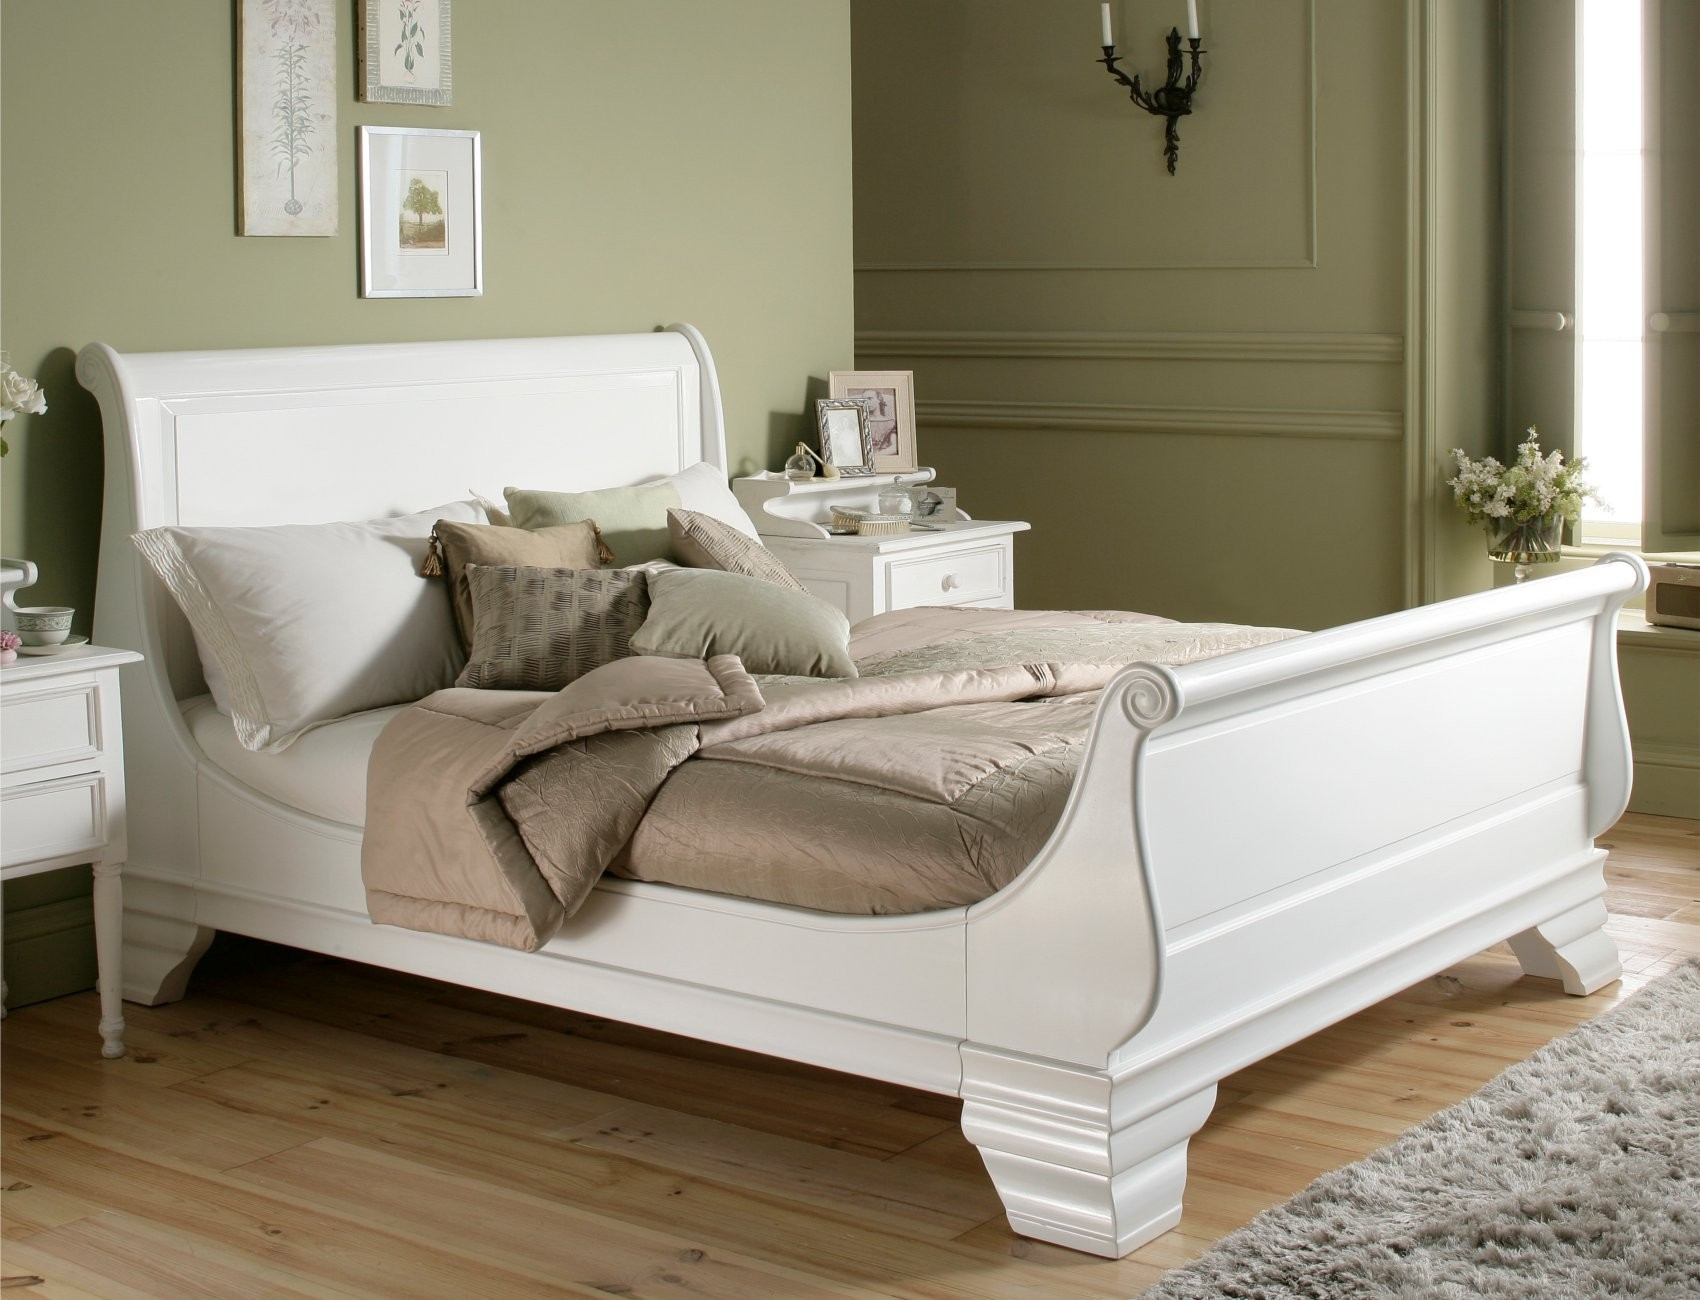 White Wooden Bed Frame King Size